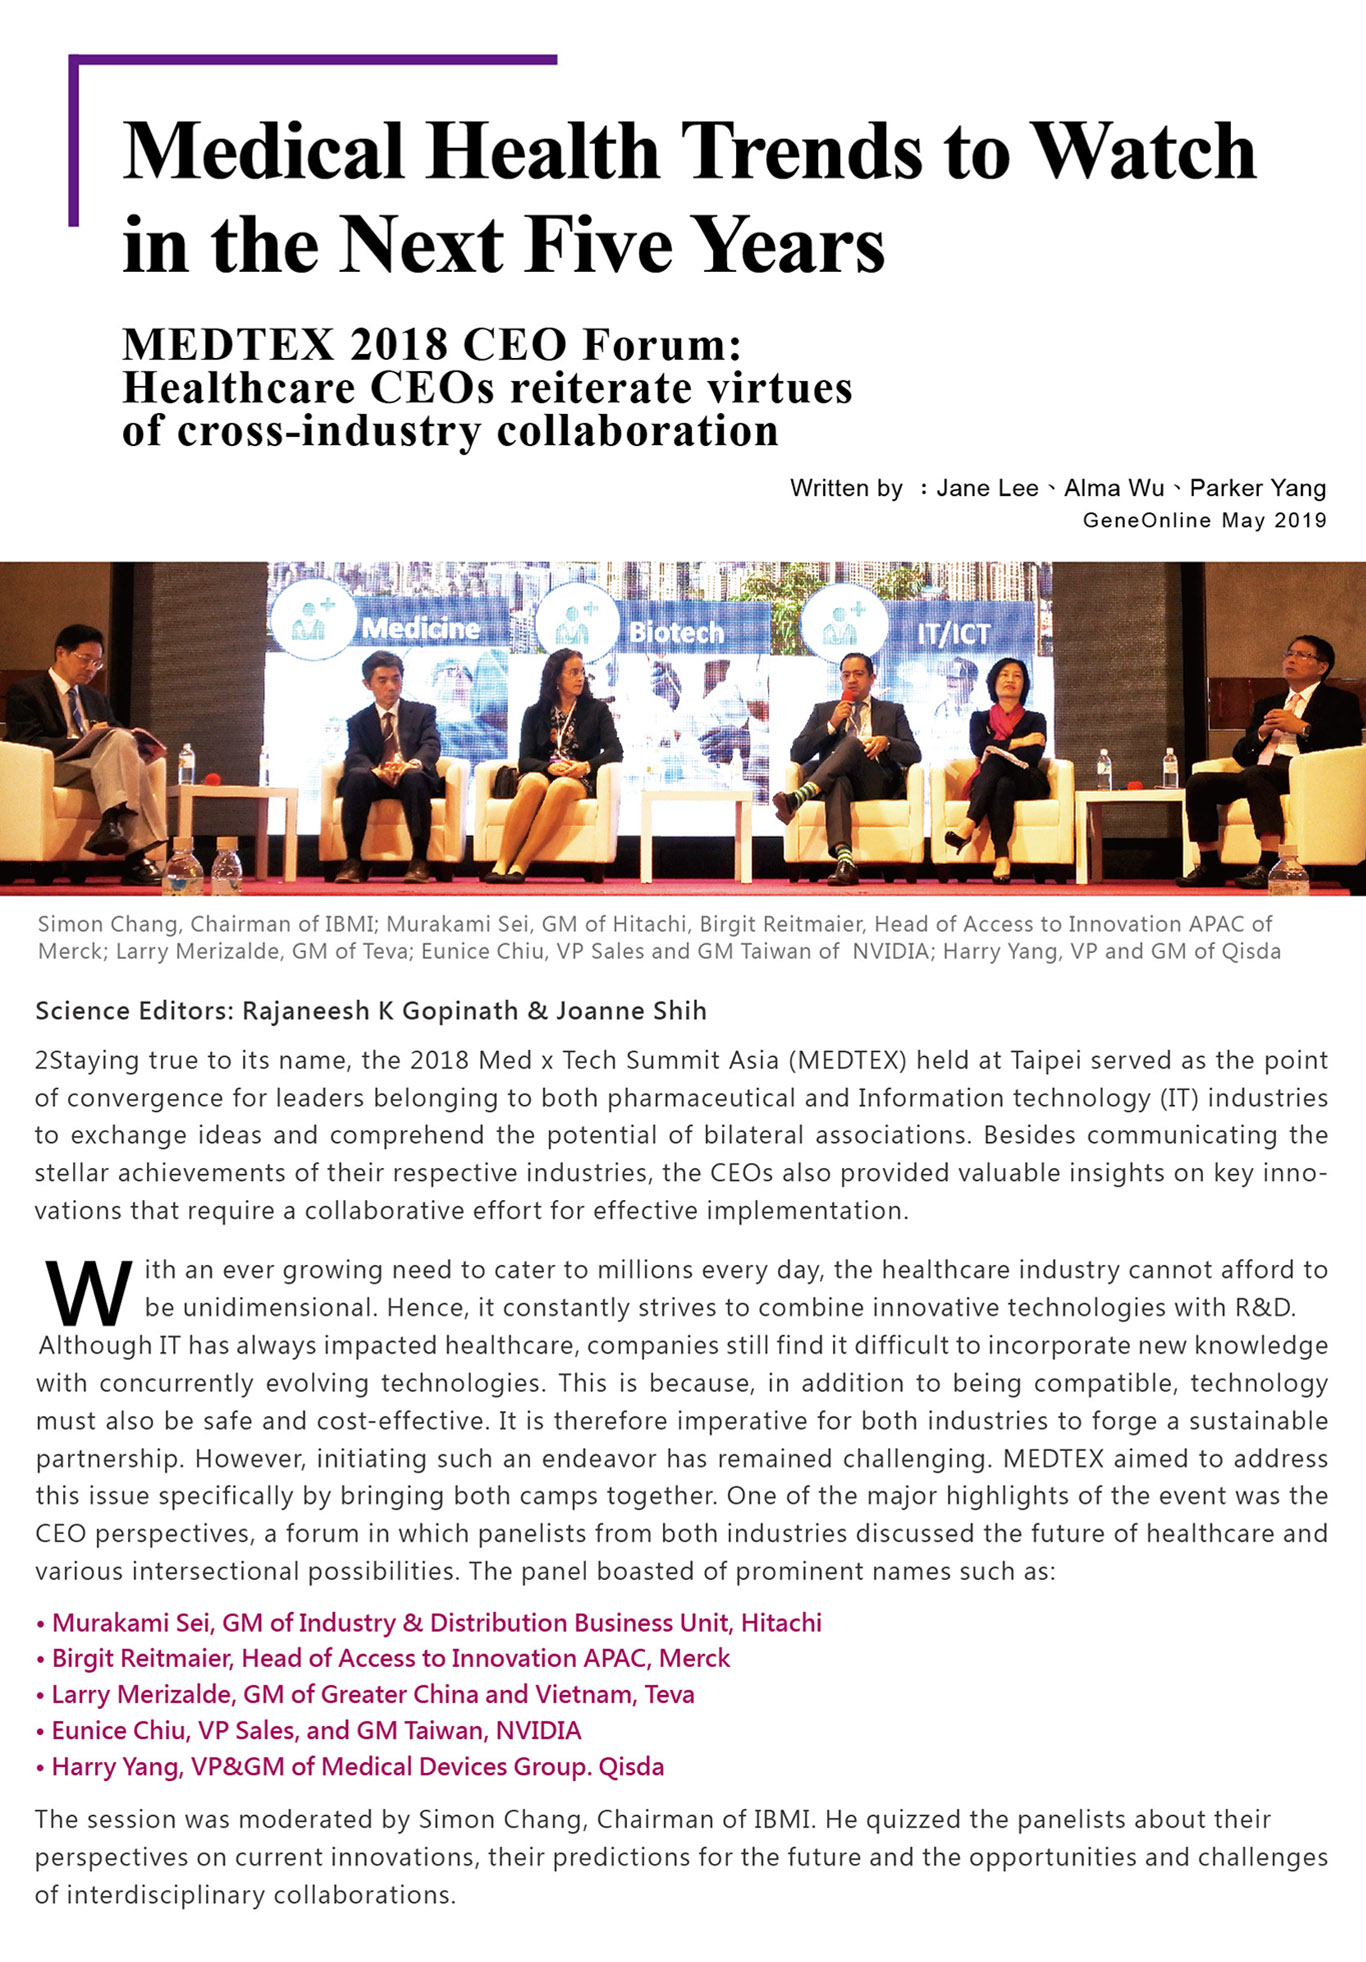 Science Editors: Rajaneesh K Gopinath & Joanne Shih Staying true to its name, the 2018 Med x Tech Summit Asia (MEDTEX) held at Taipei served as the point of convergence for leaders belonging to both pharmaceutical and Information technology (IT) industries to exchange ideas and comprehend the potential of bilateral associations. Besides communicating the stellar achievements of their respective industries, the CEOs also provided valuable insights on key innovations that require a collaborative effort for effective implementation. With an ever growing need to cater to millions every day, the healthcare industry cannot afford to be unidimensional. Hence, it constantly strives to combine innovative technologies with R&D. Although IT has always impacted healthcare, companies still find it difficult to incorporate new knowledge with concurrently evolving technologies. This is because, in addition to being compatible, technology must also be safe and cost-effective. It is therefore imperative for both industries to forge a sustainable partnership. However, initiating such an endeavor has remained challenging. MEDTEX aimed to address this issue specifically by bringing both camps together. One of the major highlights of the event was the CEO perspectives, a forum in which panelists from both industries discussed the future of healthcare and various intersectional possibilities. The panel boasted of prominent names such as: ●Murakami Sei, GM of Industry & Distribution Business Unit, Hitachi ●Birgit Reitmaier, Head of Access to Innovation APAC, Merck ●Larry Merizalde, GM of Greater China and Vietnam, Teva ●Eunice Chiu, VP Sales, and GM Taiwan, NVIDIA  ●Harry Yang, VP&GM of Medical Devices Group. Qisda The session was moderated by Simon Chang, Chairman of IBMI. He quizzed the panelists about their perspectives on current innovations, their predictions for the future and the opportunities and challenges of interdisciplinary collaborations.